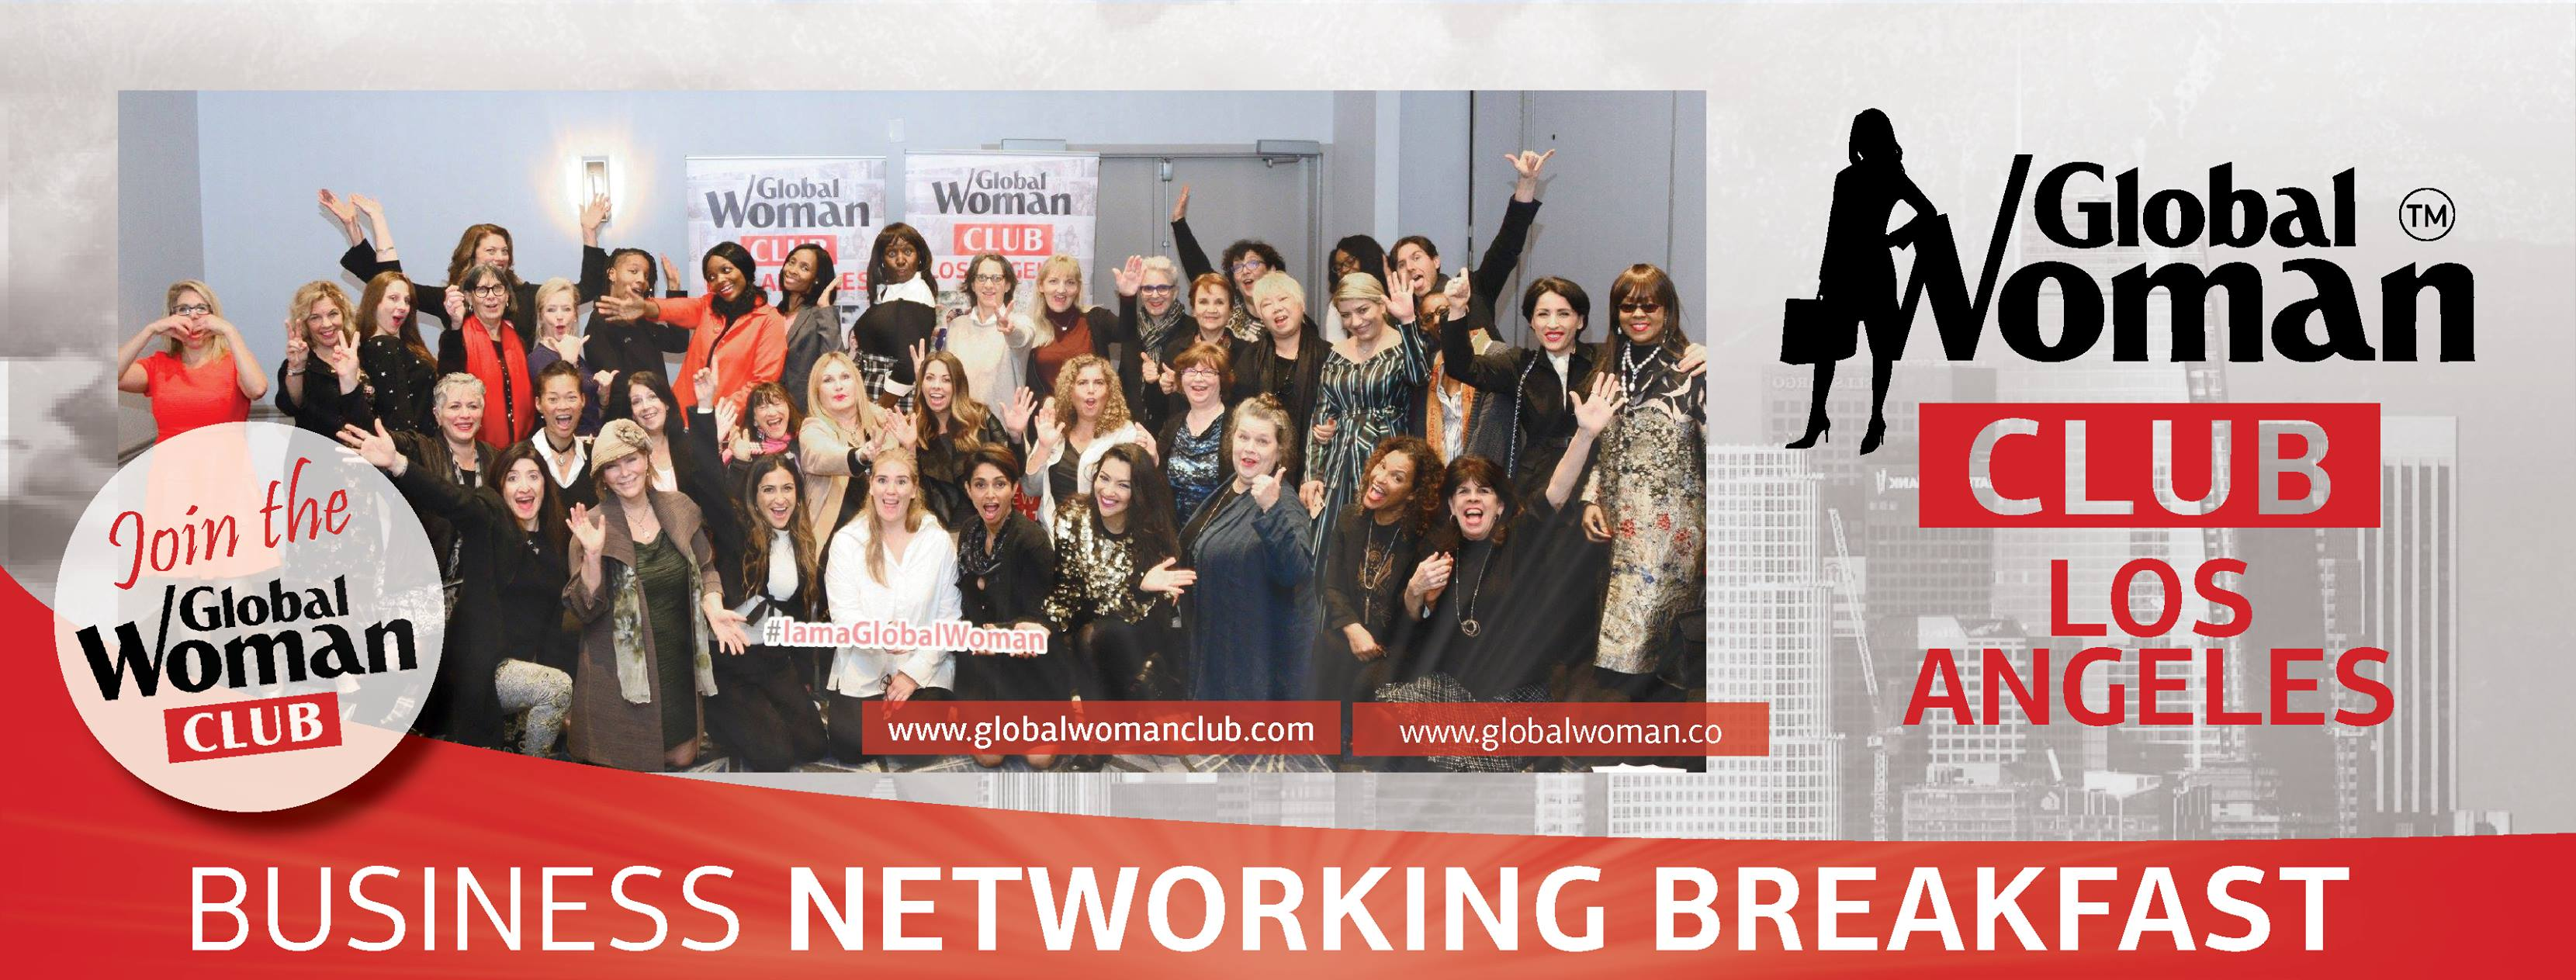 GLOBAL WOMAN CLUB Los Angeles : BUSINESS NETWORKING MEETING - APRIL